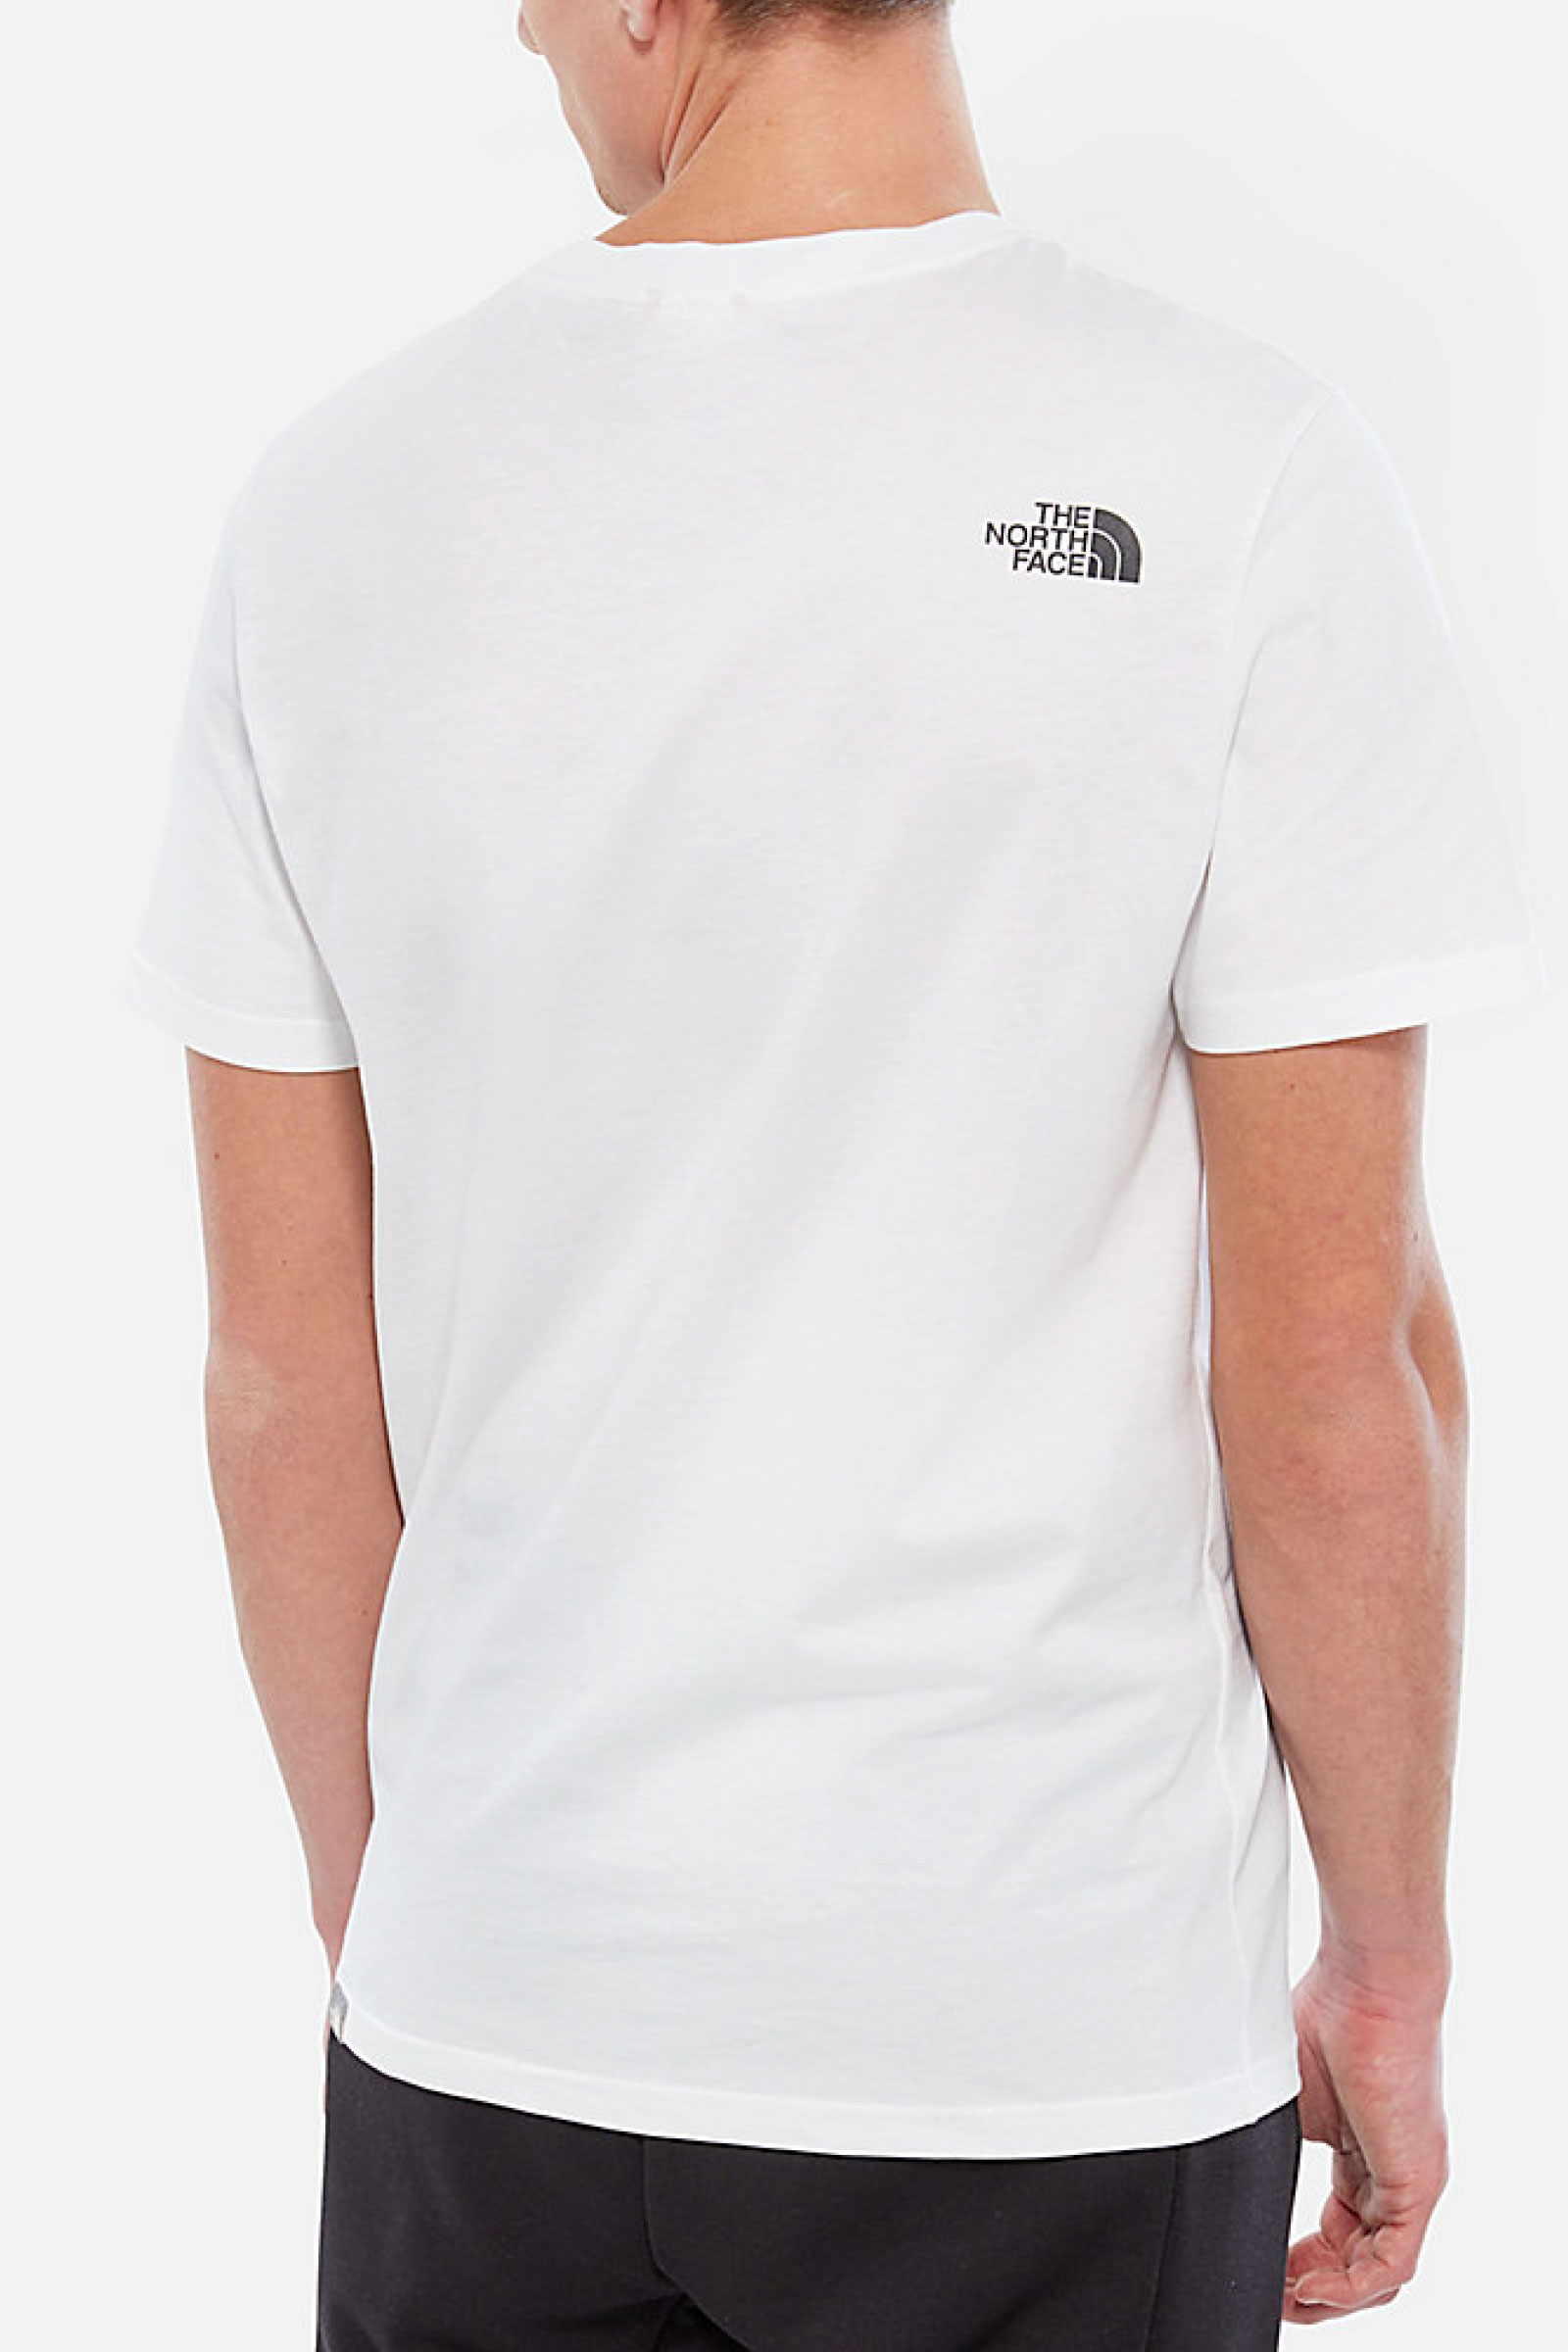 THE NORTH FACE   T-Shirt   NF0A2TX3FN4